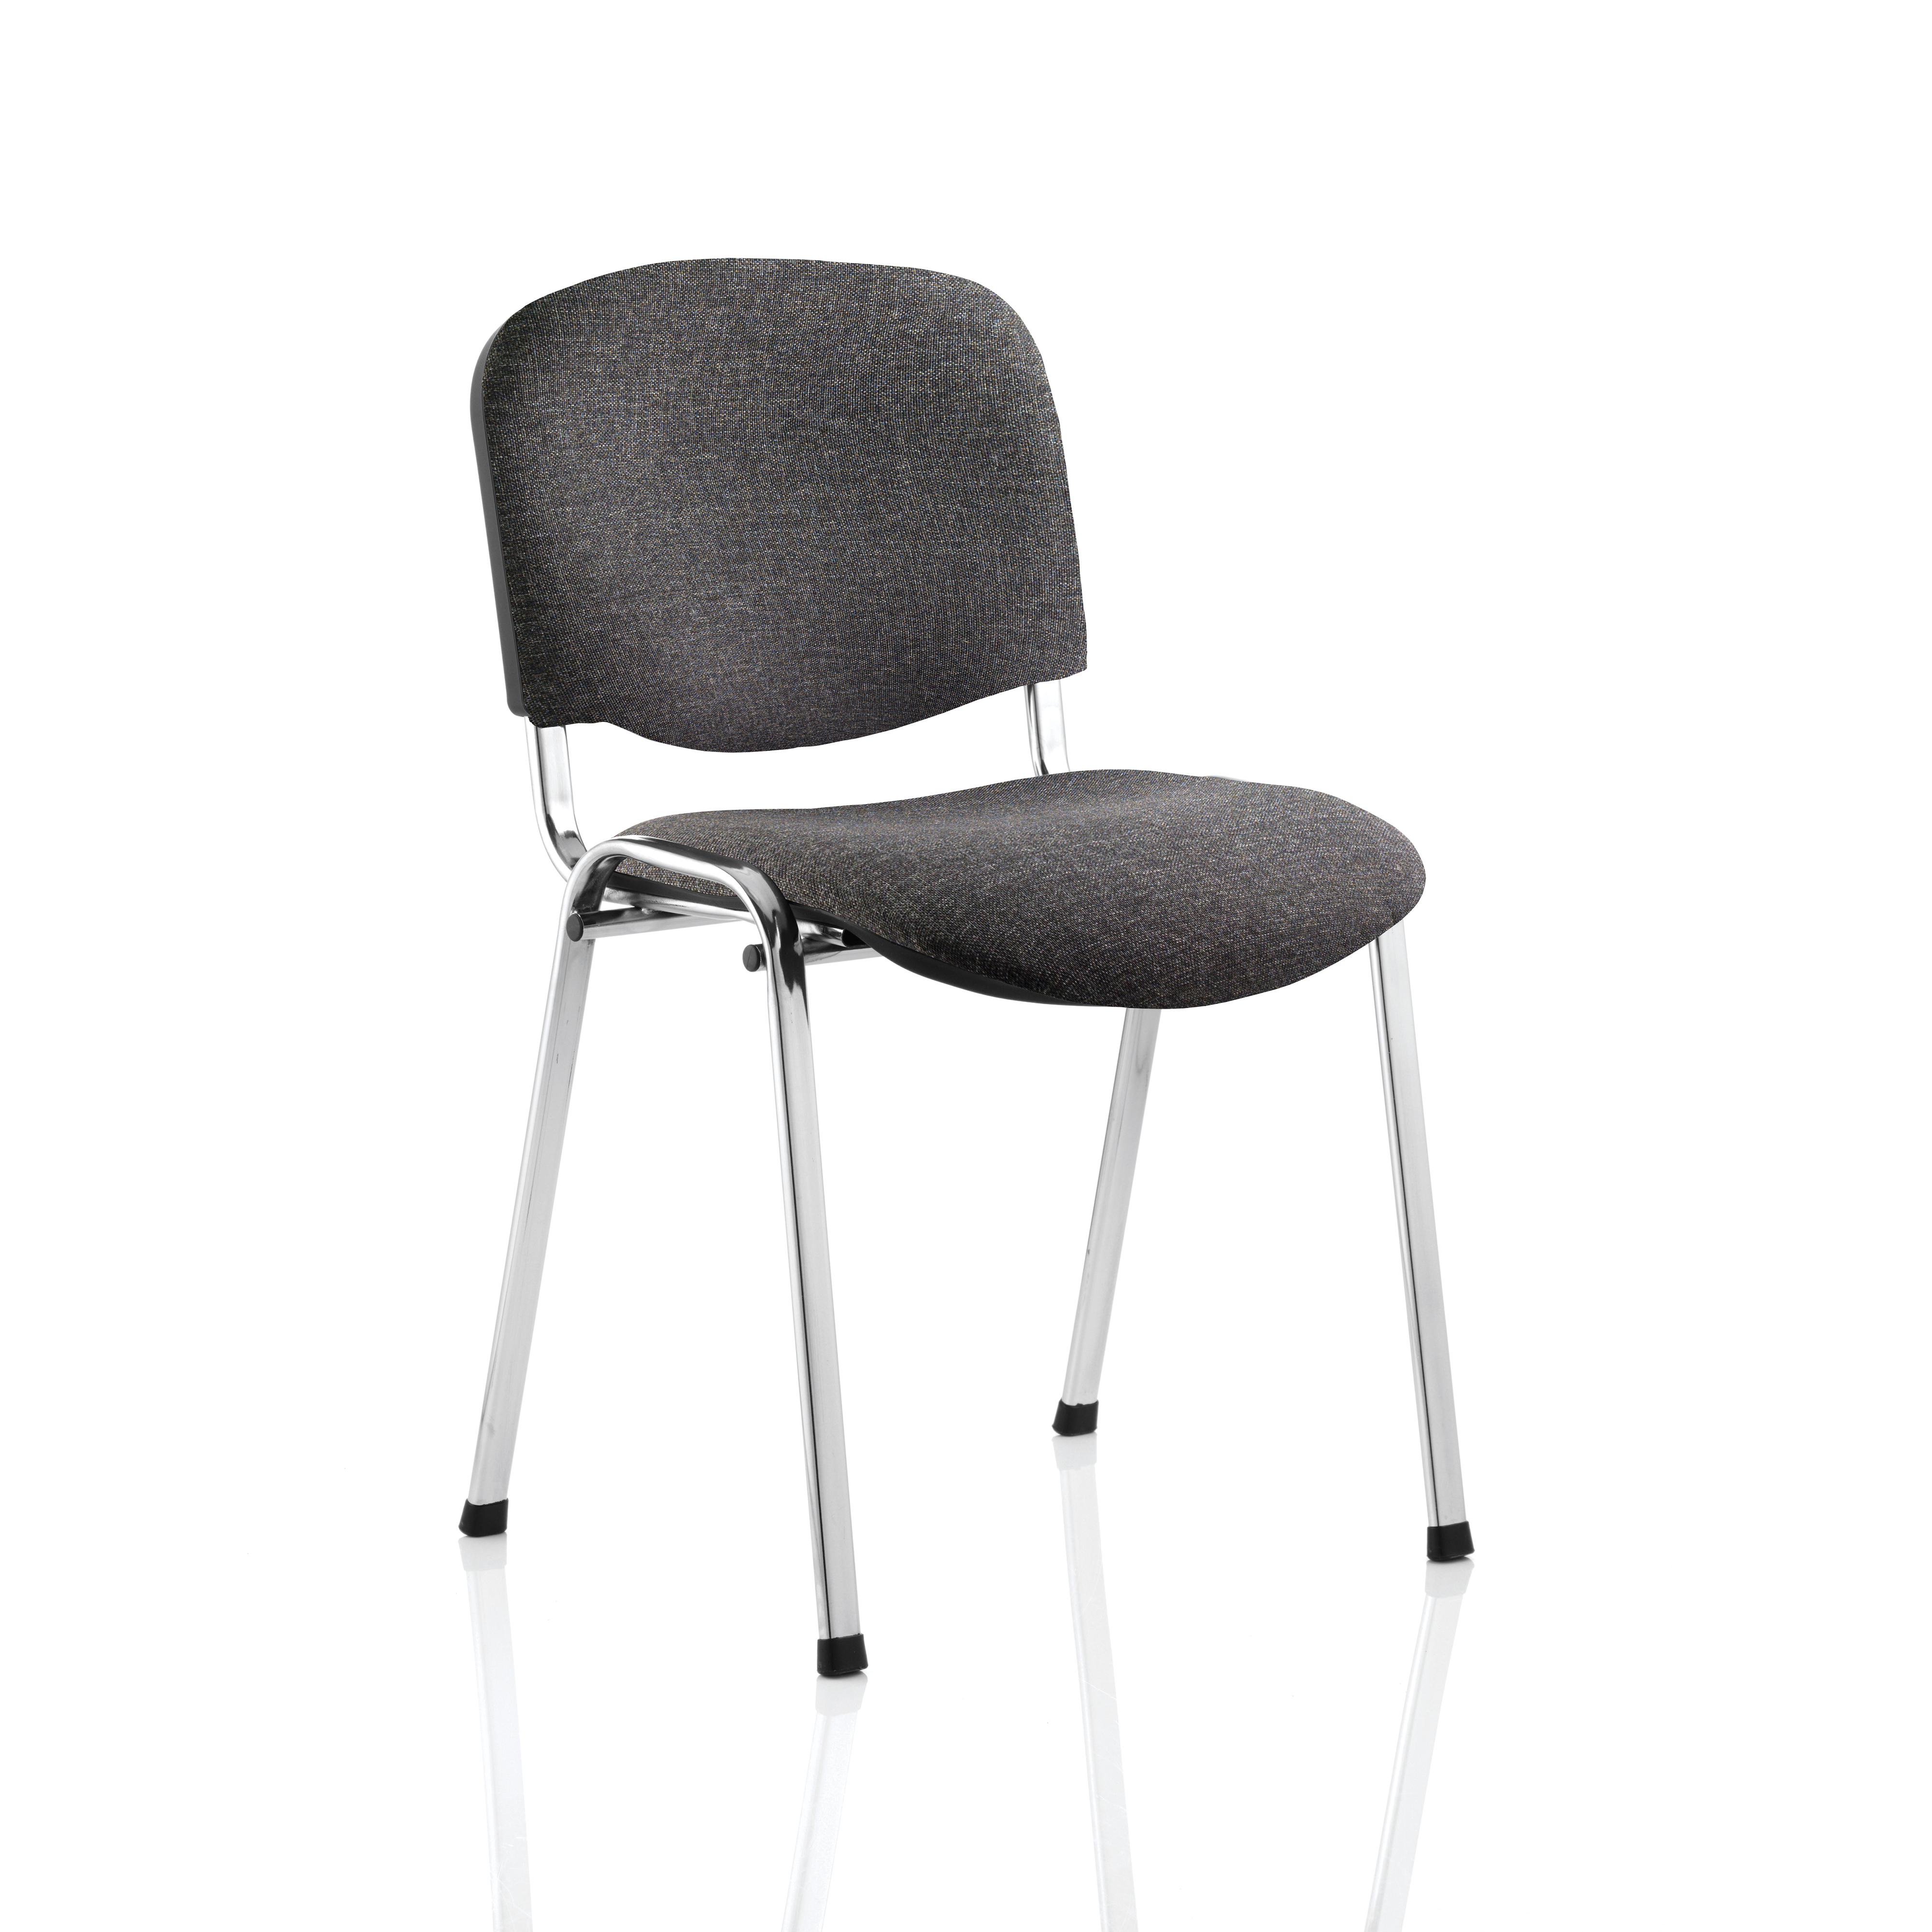 Trexus Stacking Chair Chrome Frame Charcoal 480x420x500mm Ref BR000069